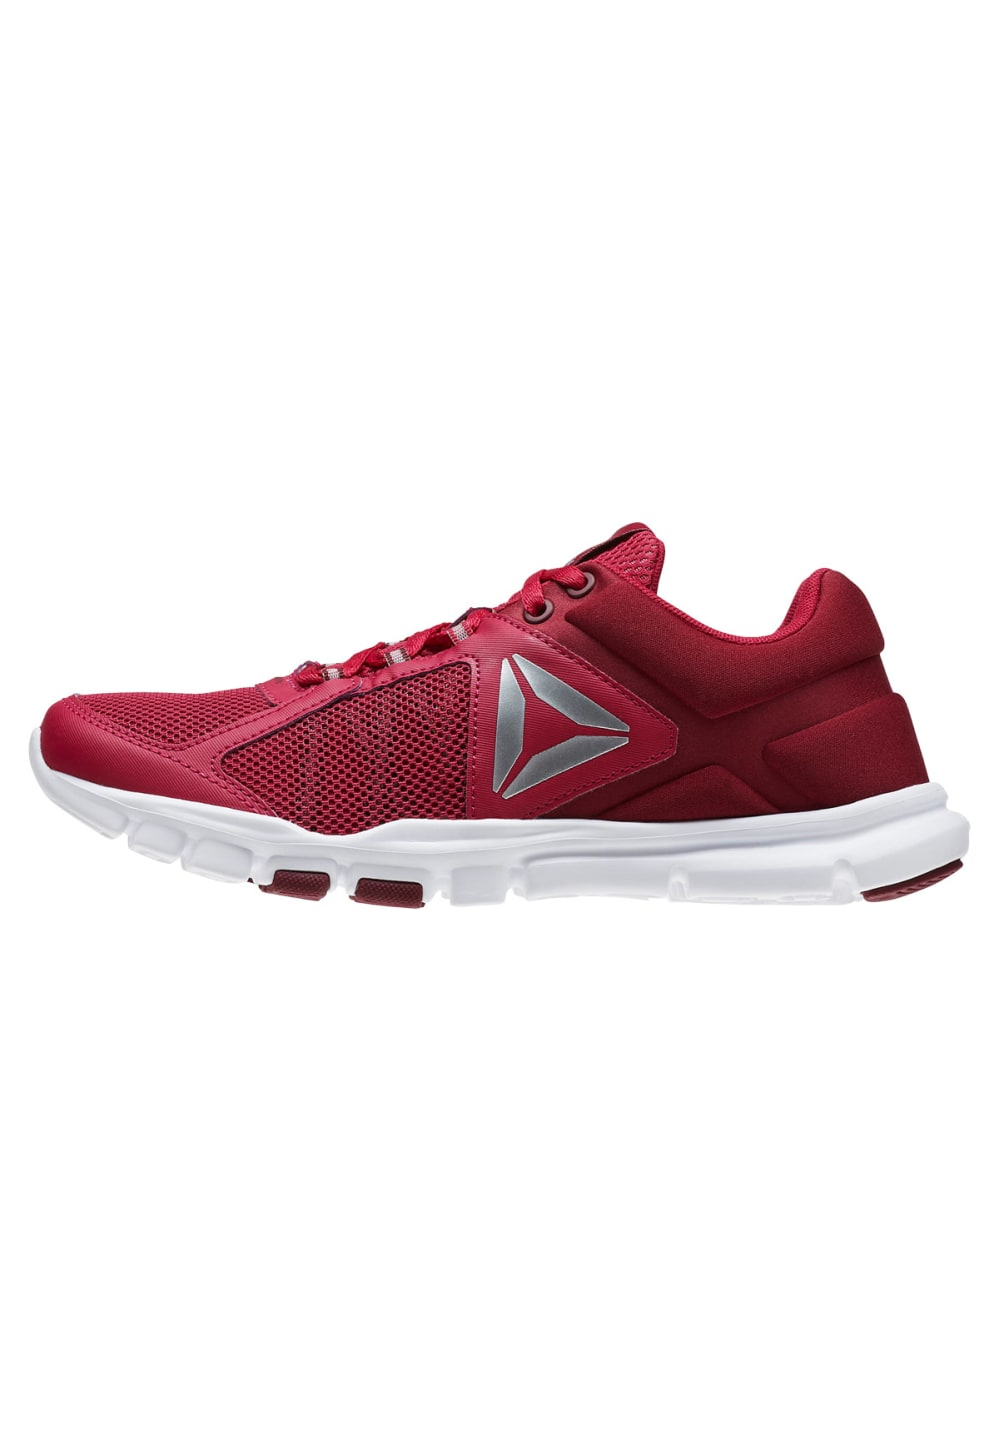 76c950bb67ba Reebok Yourflex Trainette 9.0 MT - Fitness shoes for Women - Red